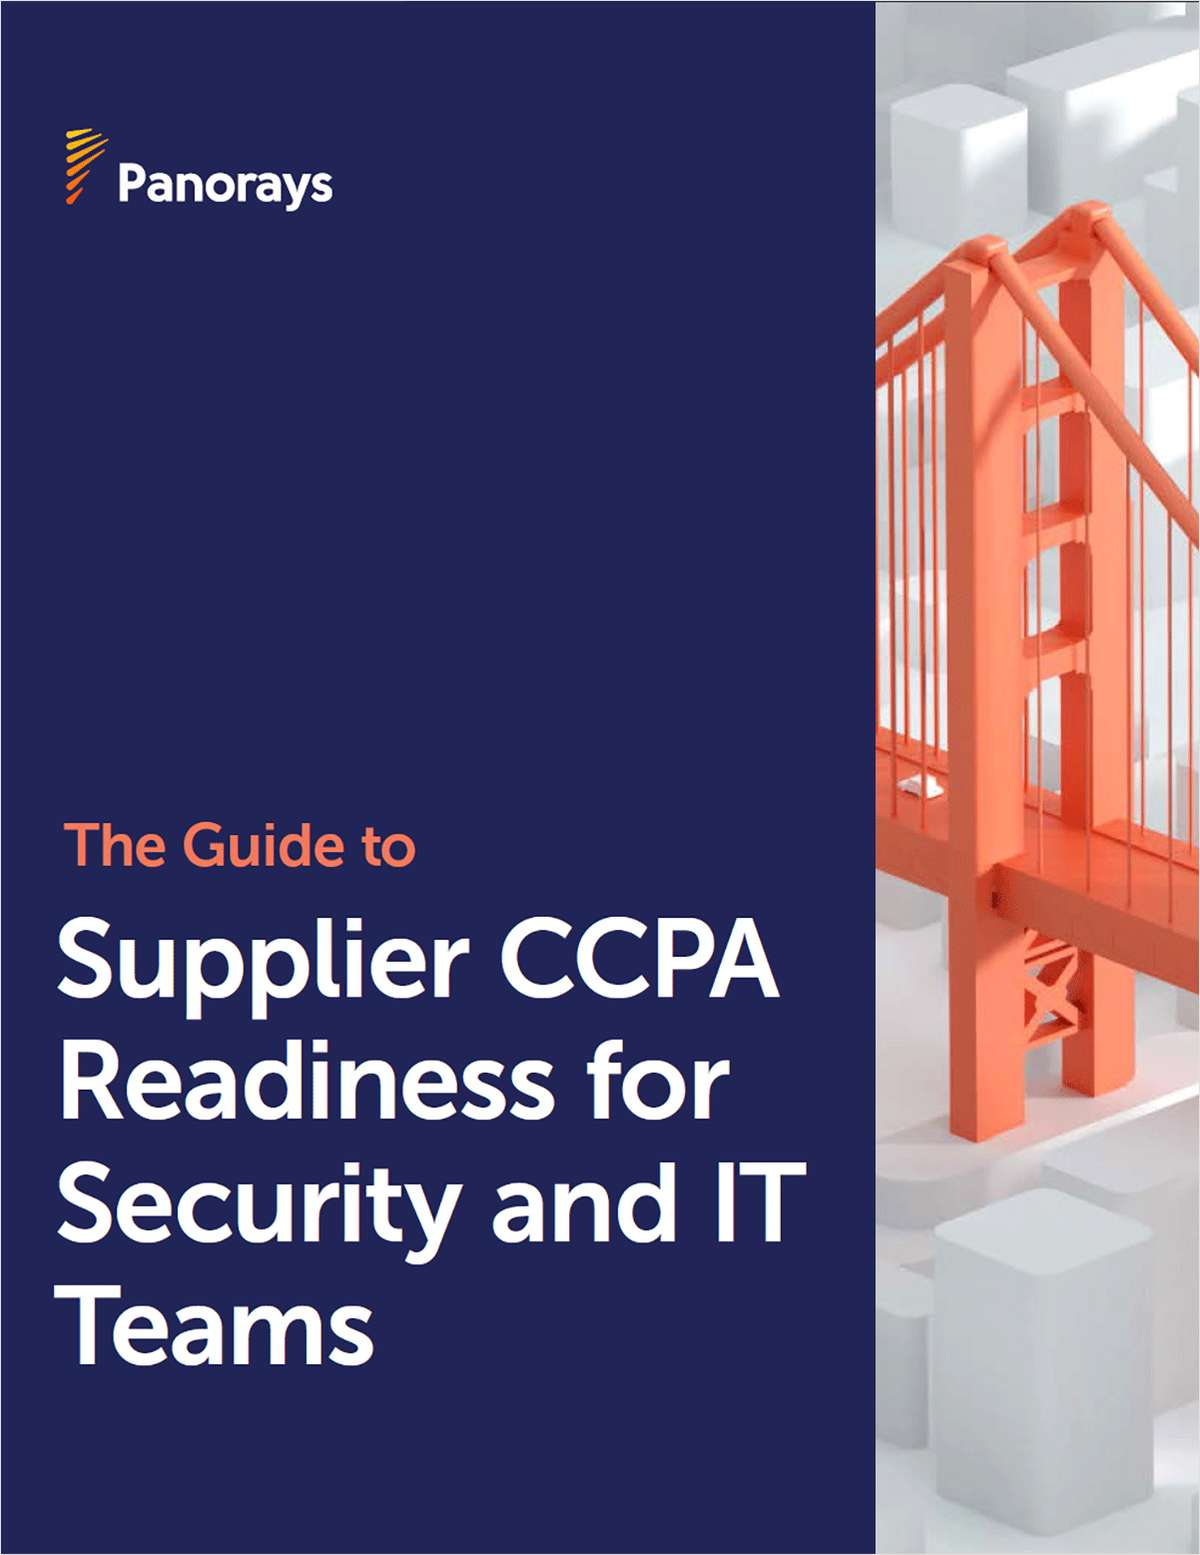 The Guide to Supplier CCPA Readiness for Security and IT Teams